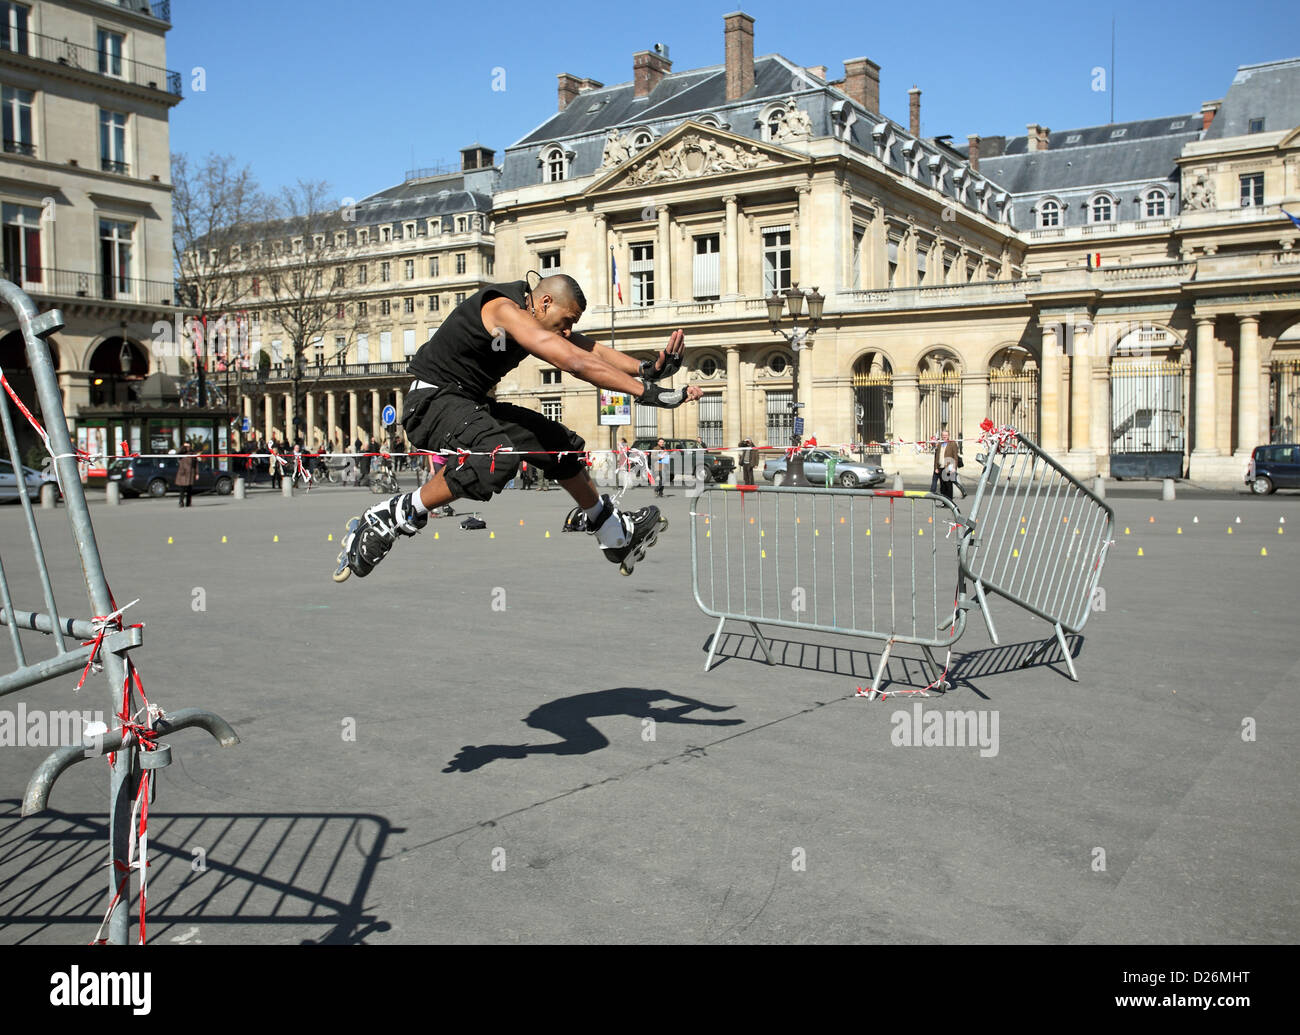 Paris, France, on skates man jumps over a strained - Stock Image